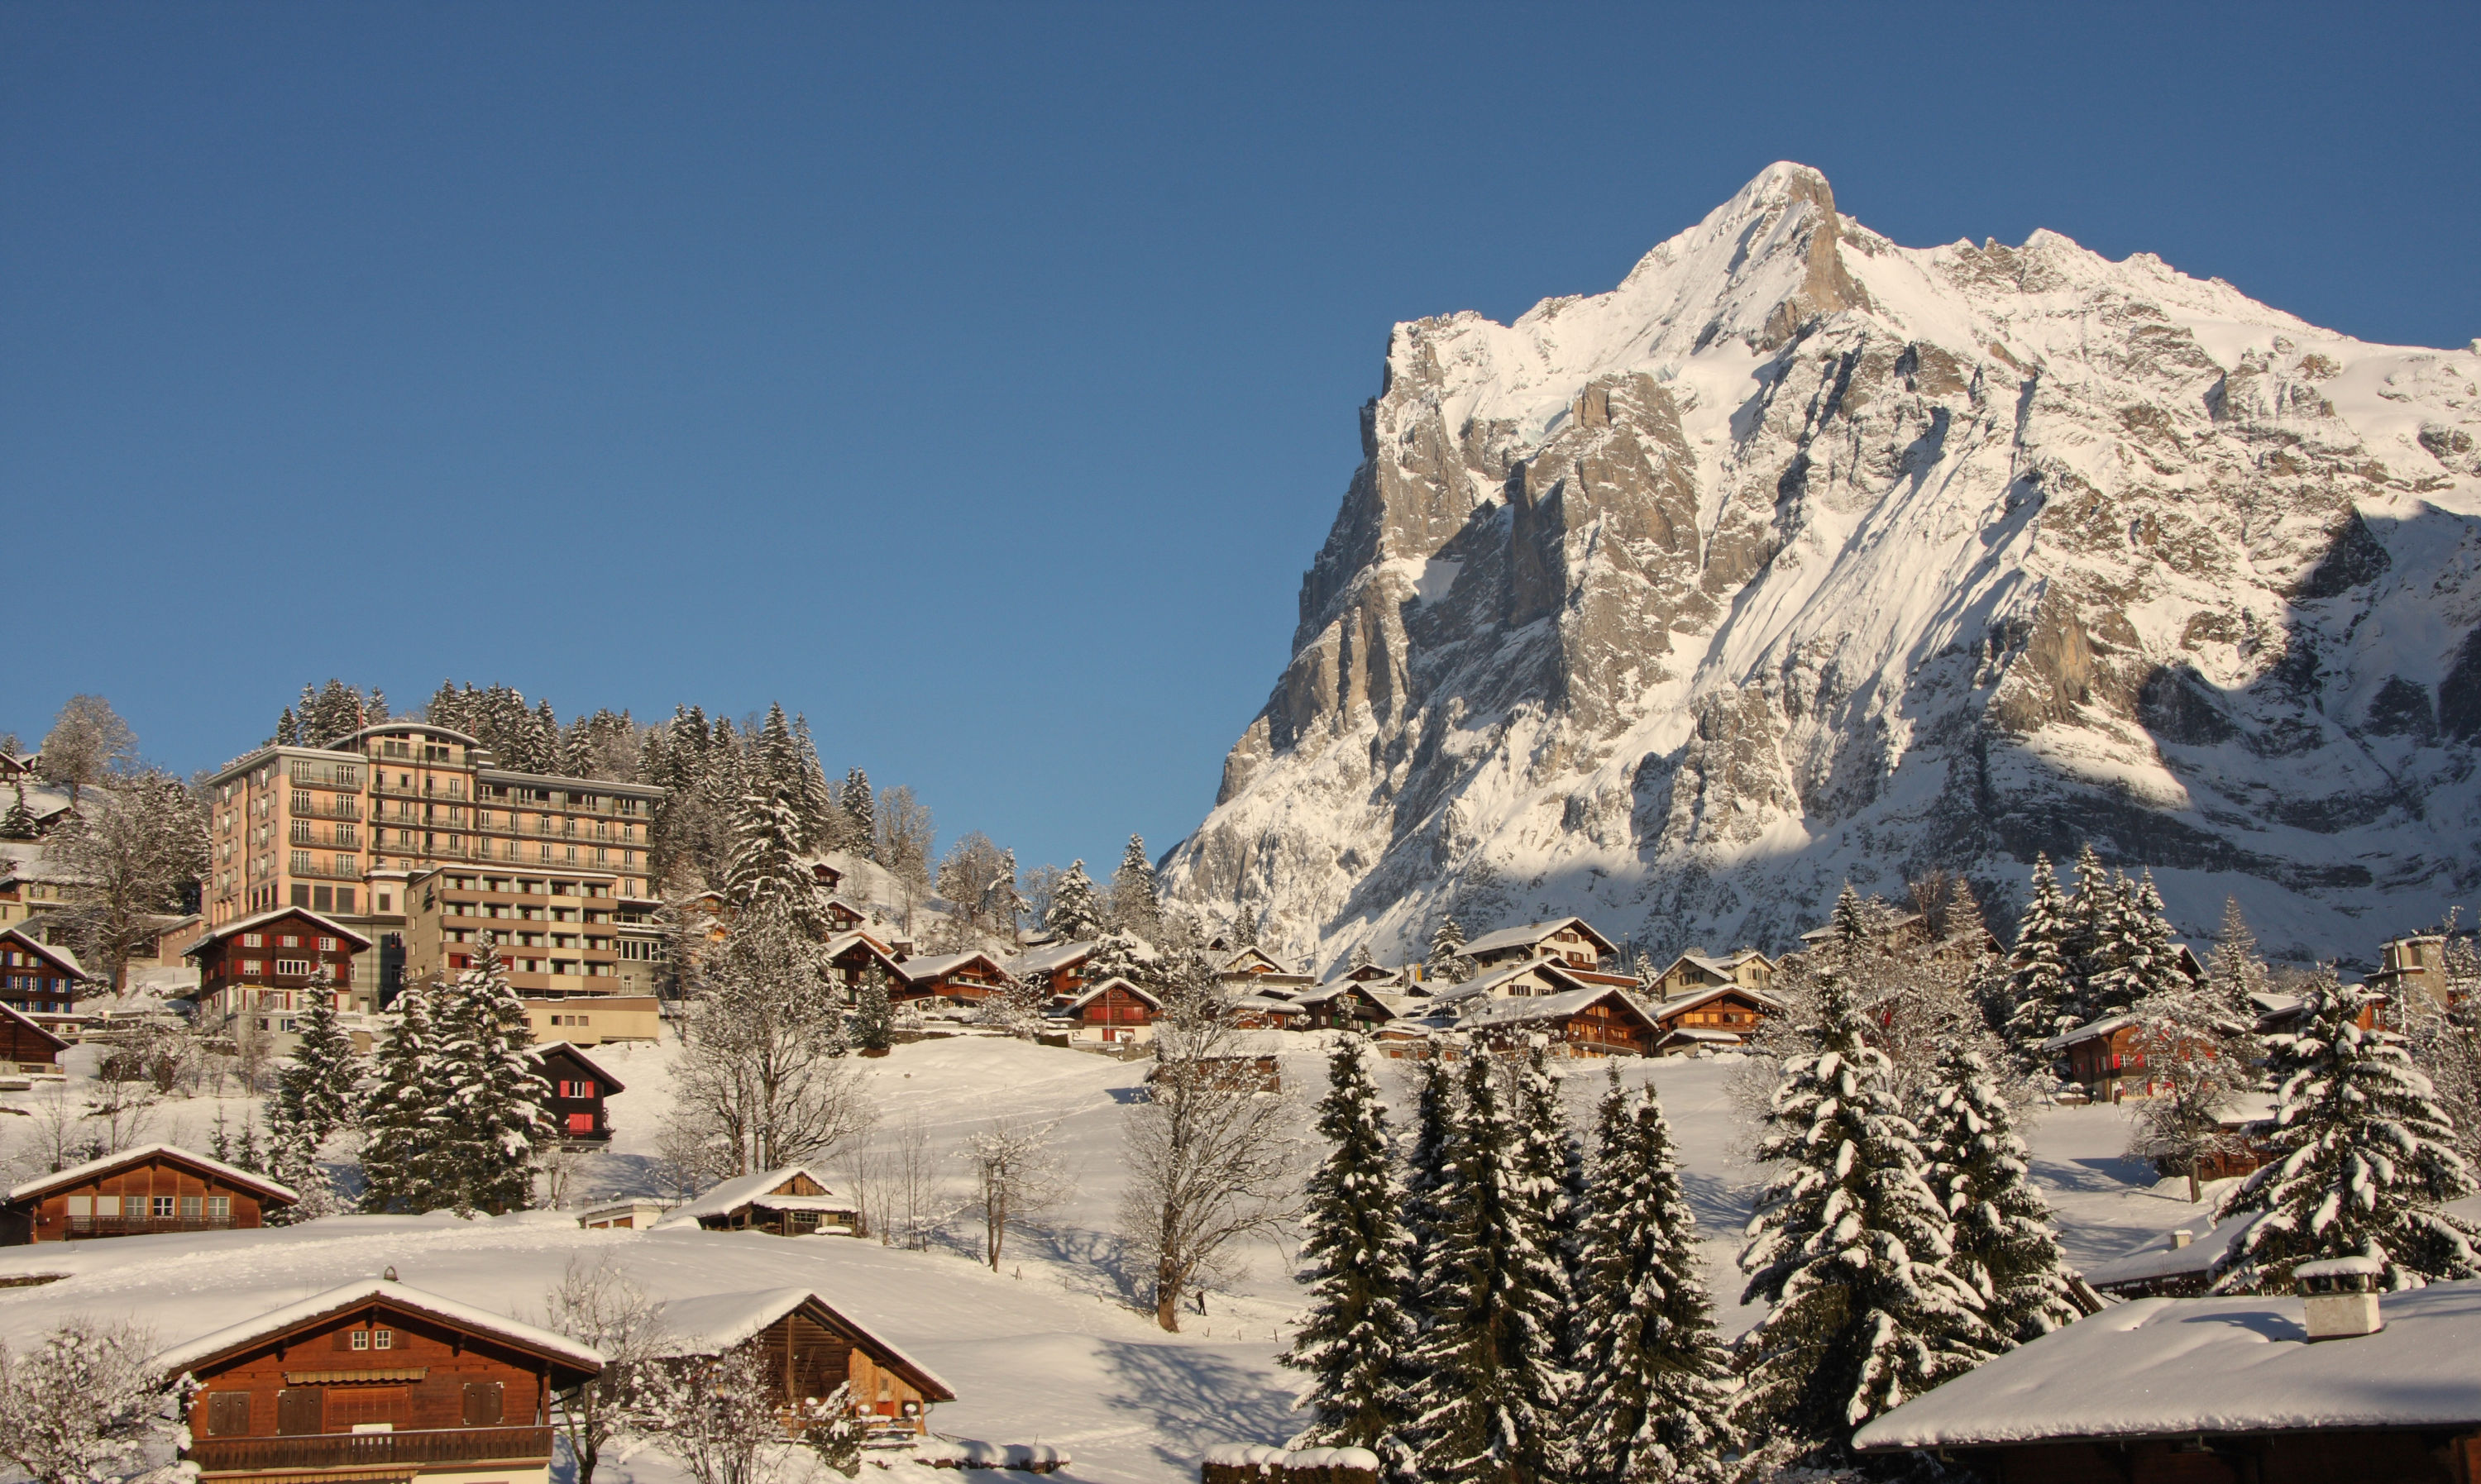 Hotel Belvedere Grindelwald in winter with the mountain Wetterhorn